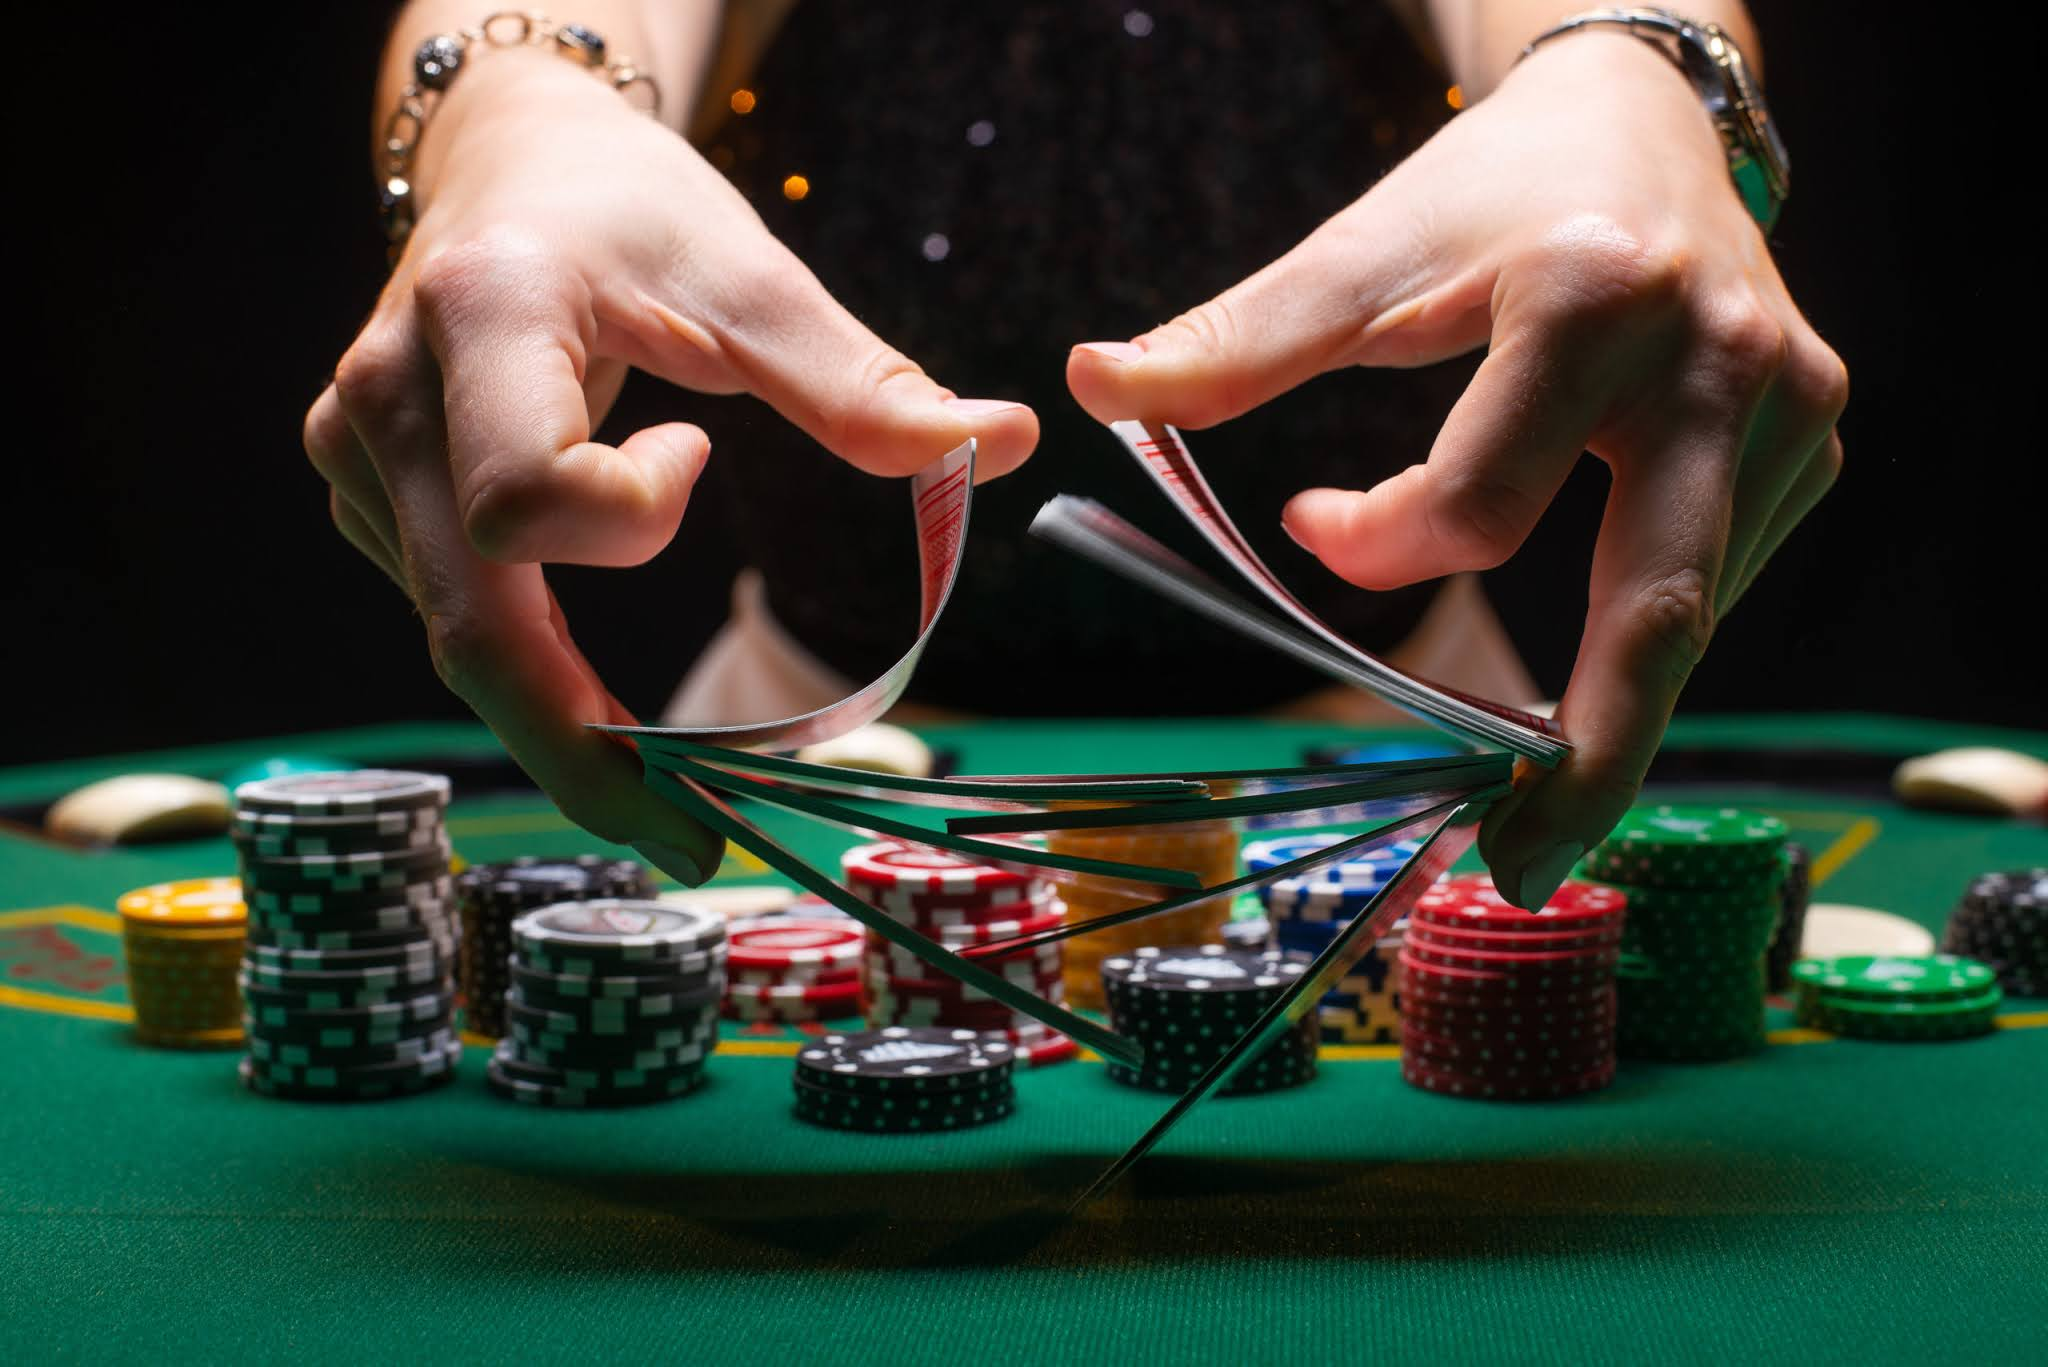 Today the majority of people are familiar with the idea of poker gaming. However, it only remained in the smoky rooms of the bars and casinos.